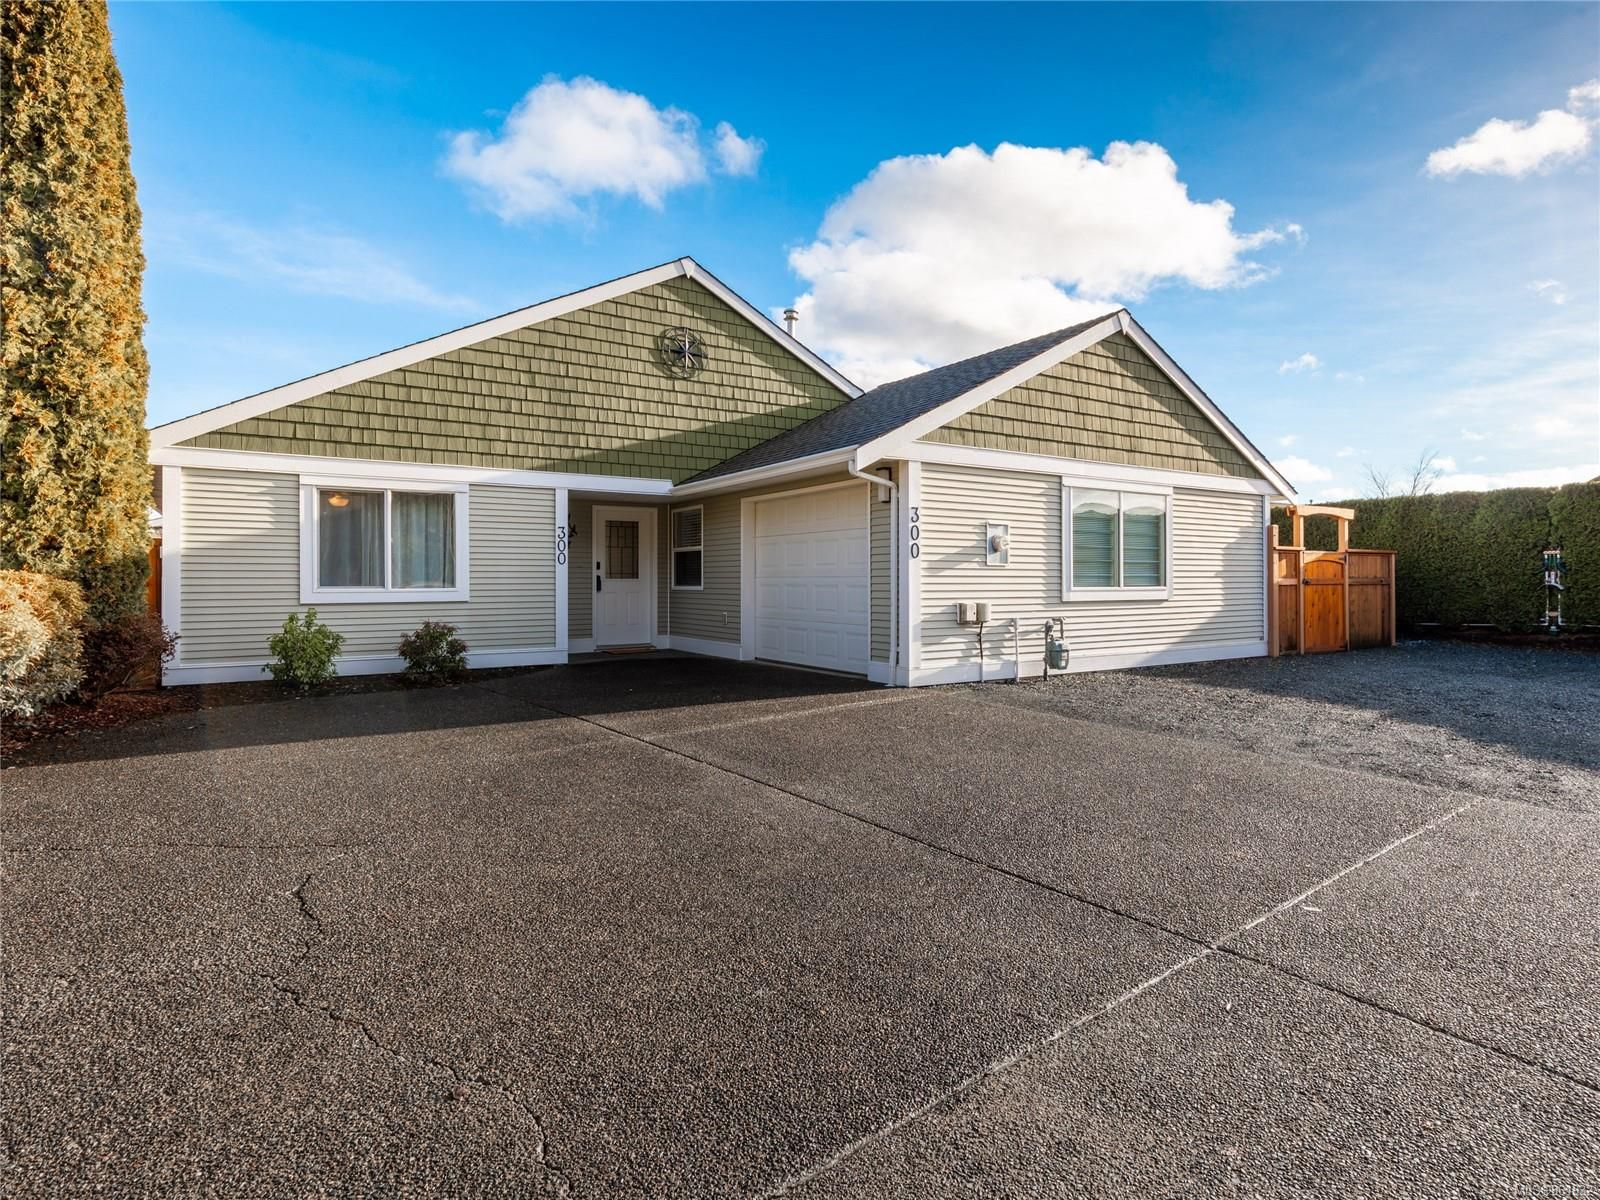 Photo 1: Photos: 300 Church Rd in : PQ Parksville House for sale (Parksville/Qualicum)  : MLS®# 861932